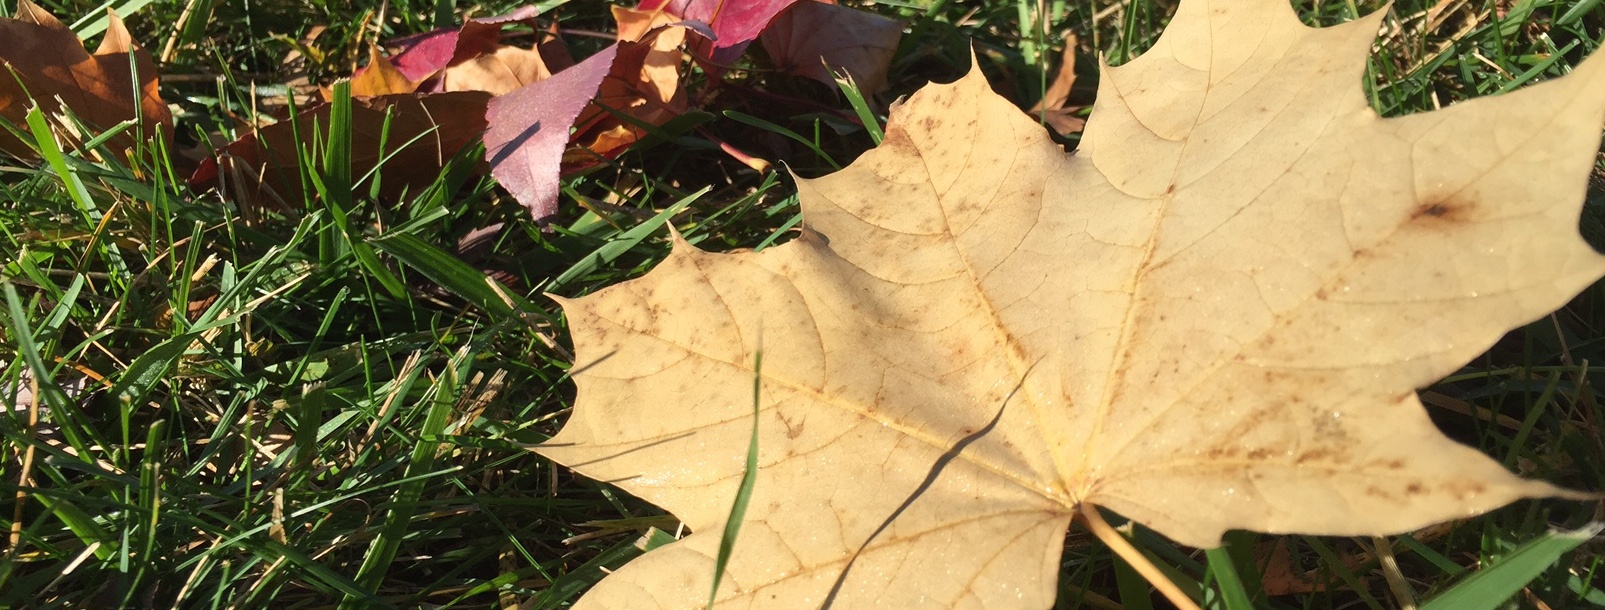 allowing leaves to sit on the lawn all winter could exacerbate snow mold